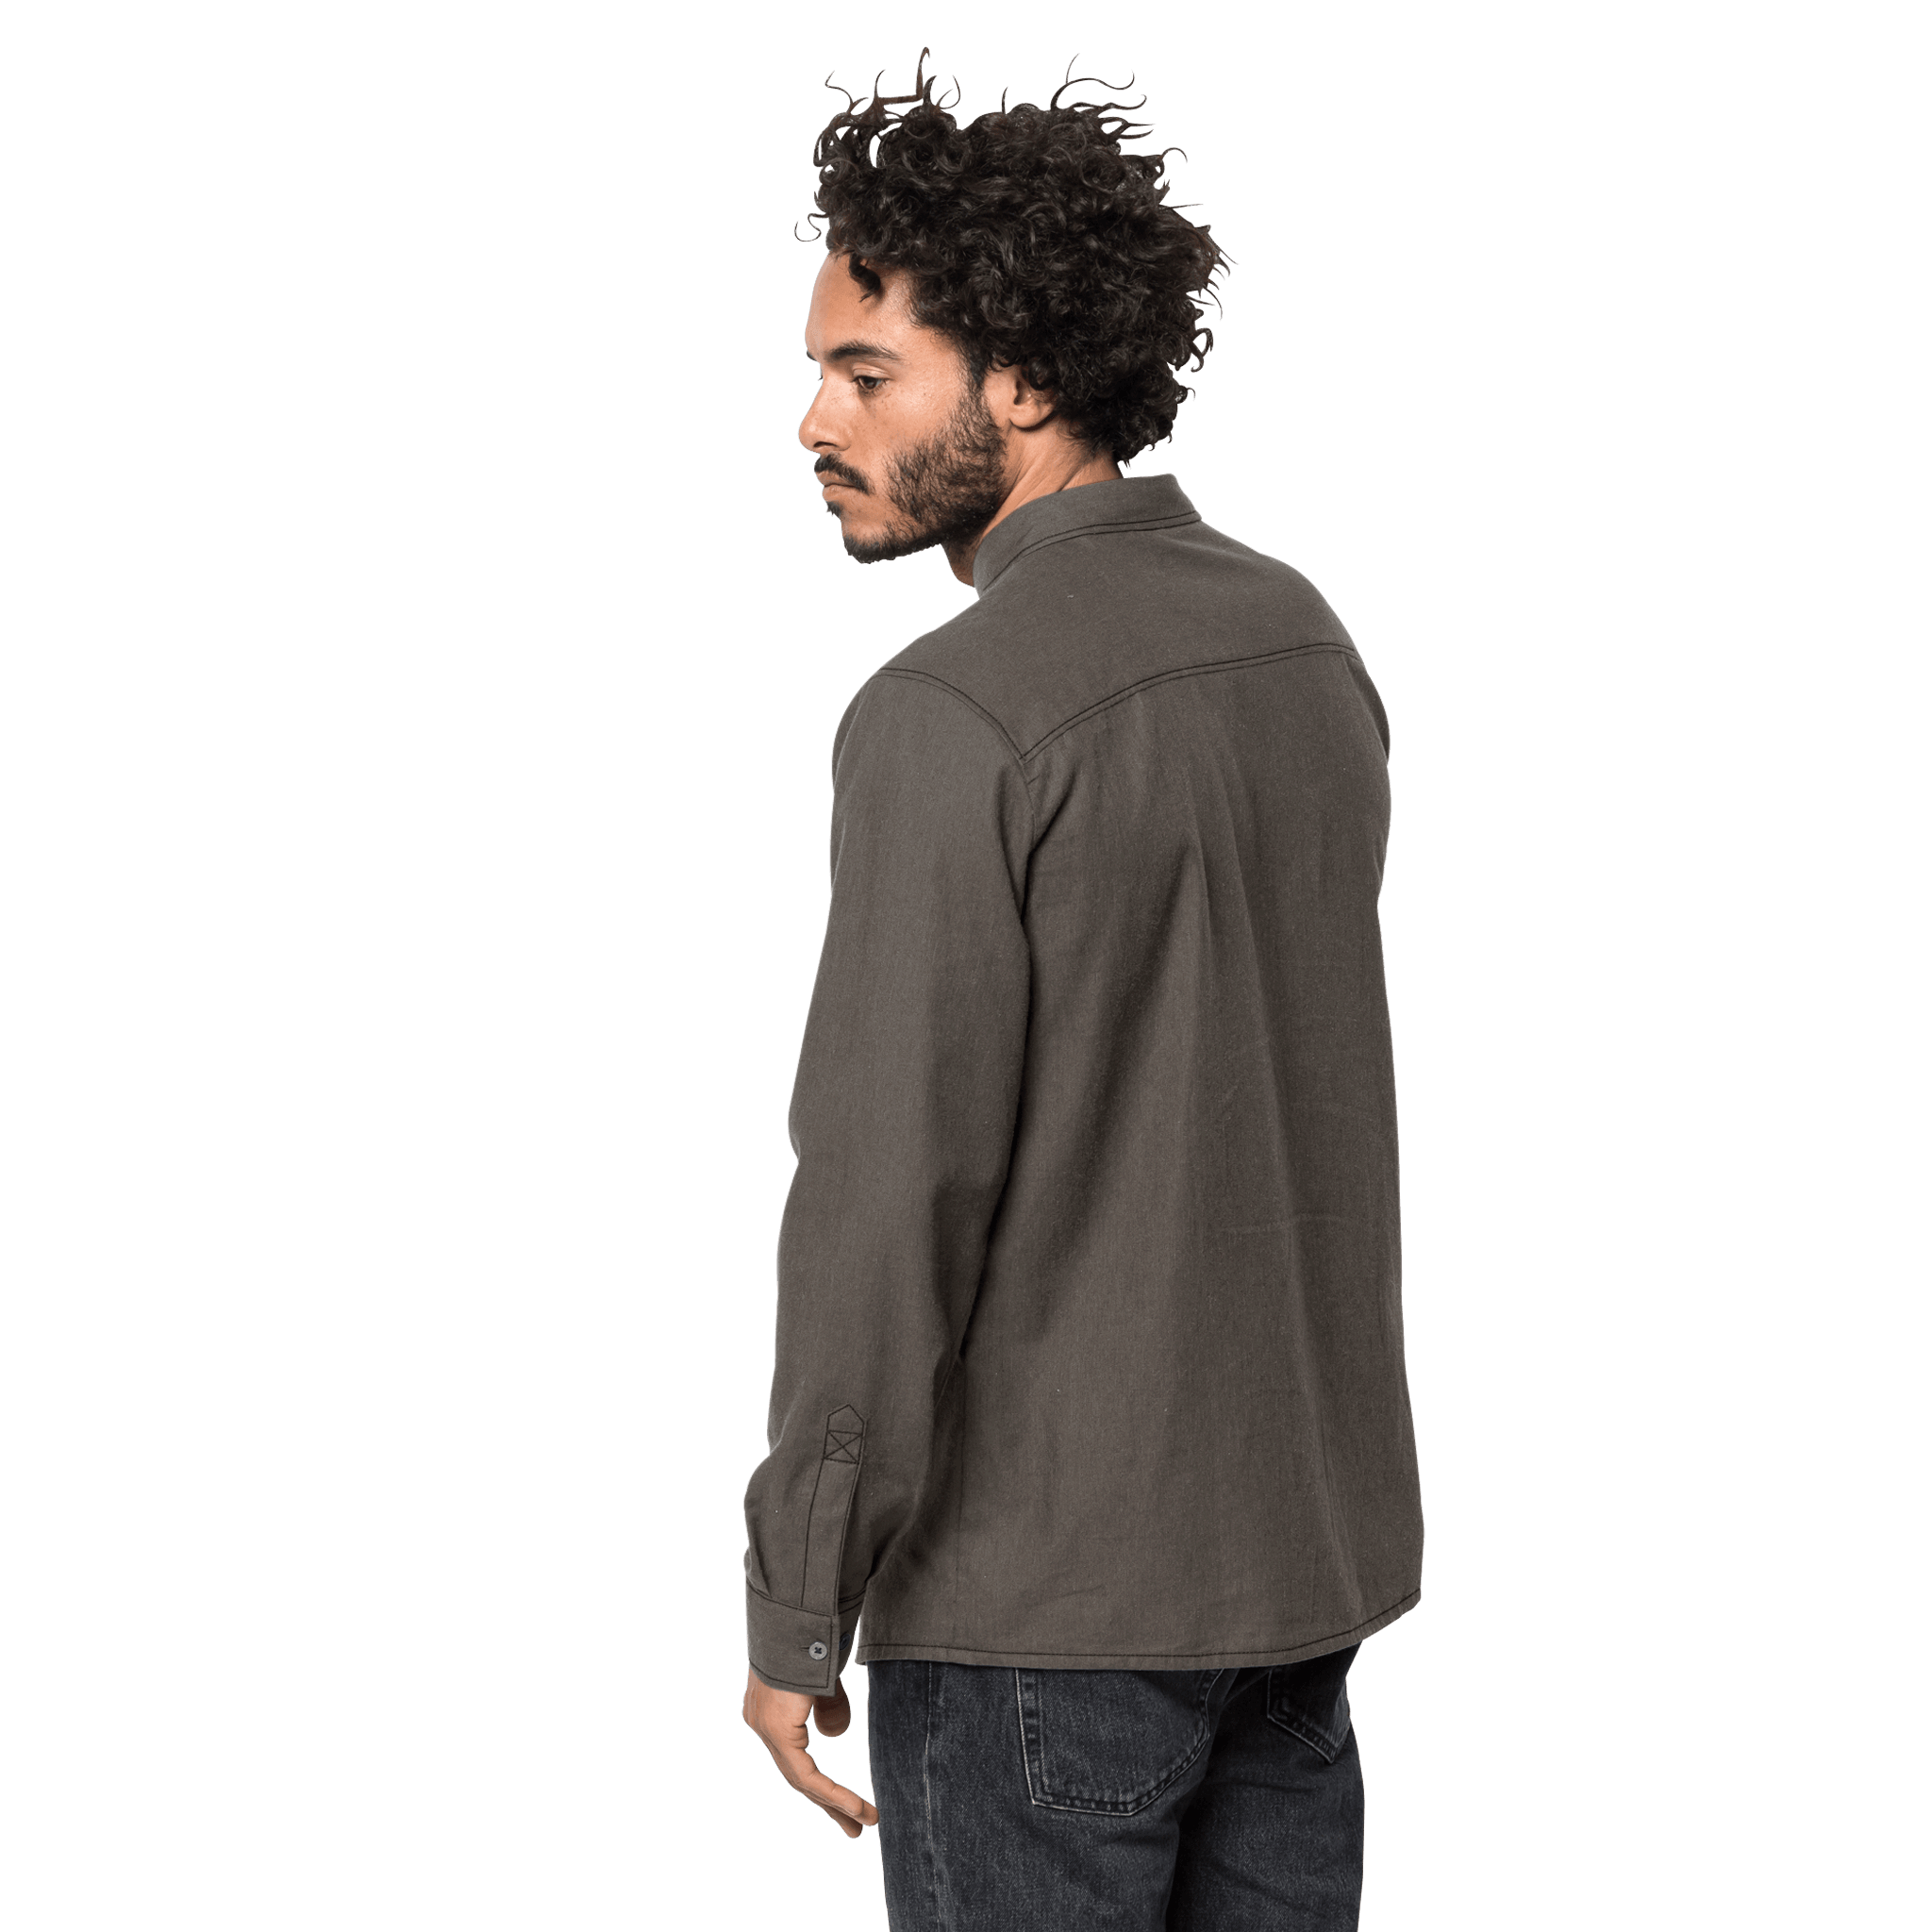 Brownstone Long-Sleeved Button Up